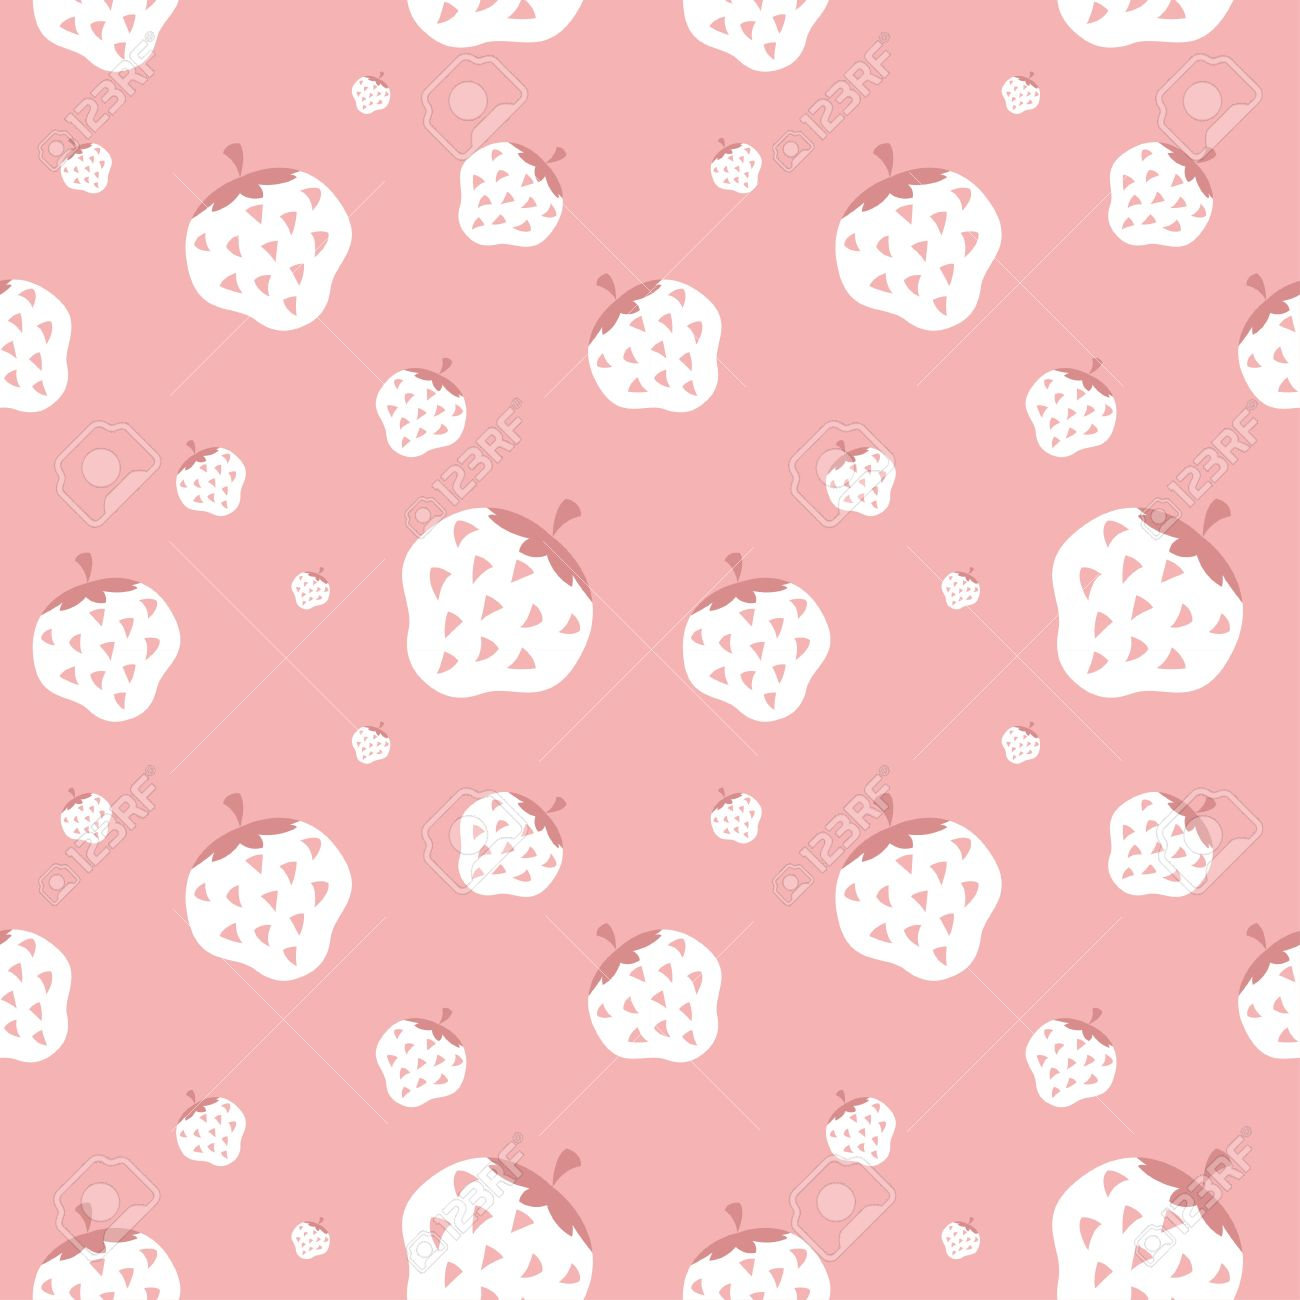 Creamy Strawberry Wallpaper Background Stock Vector